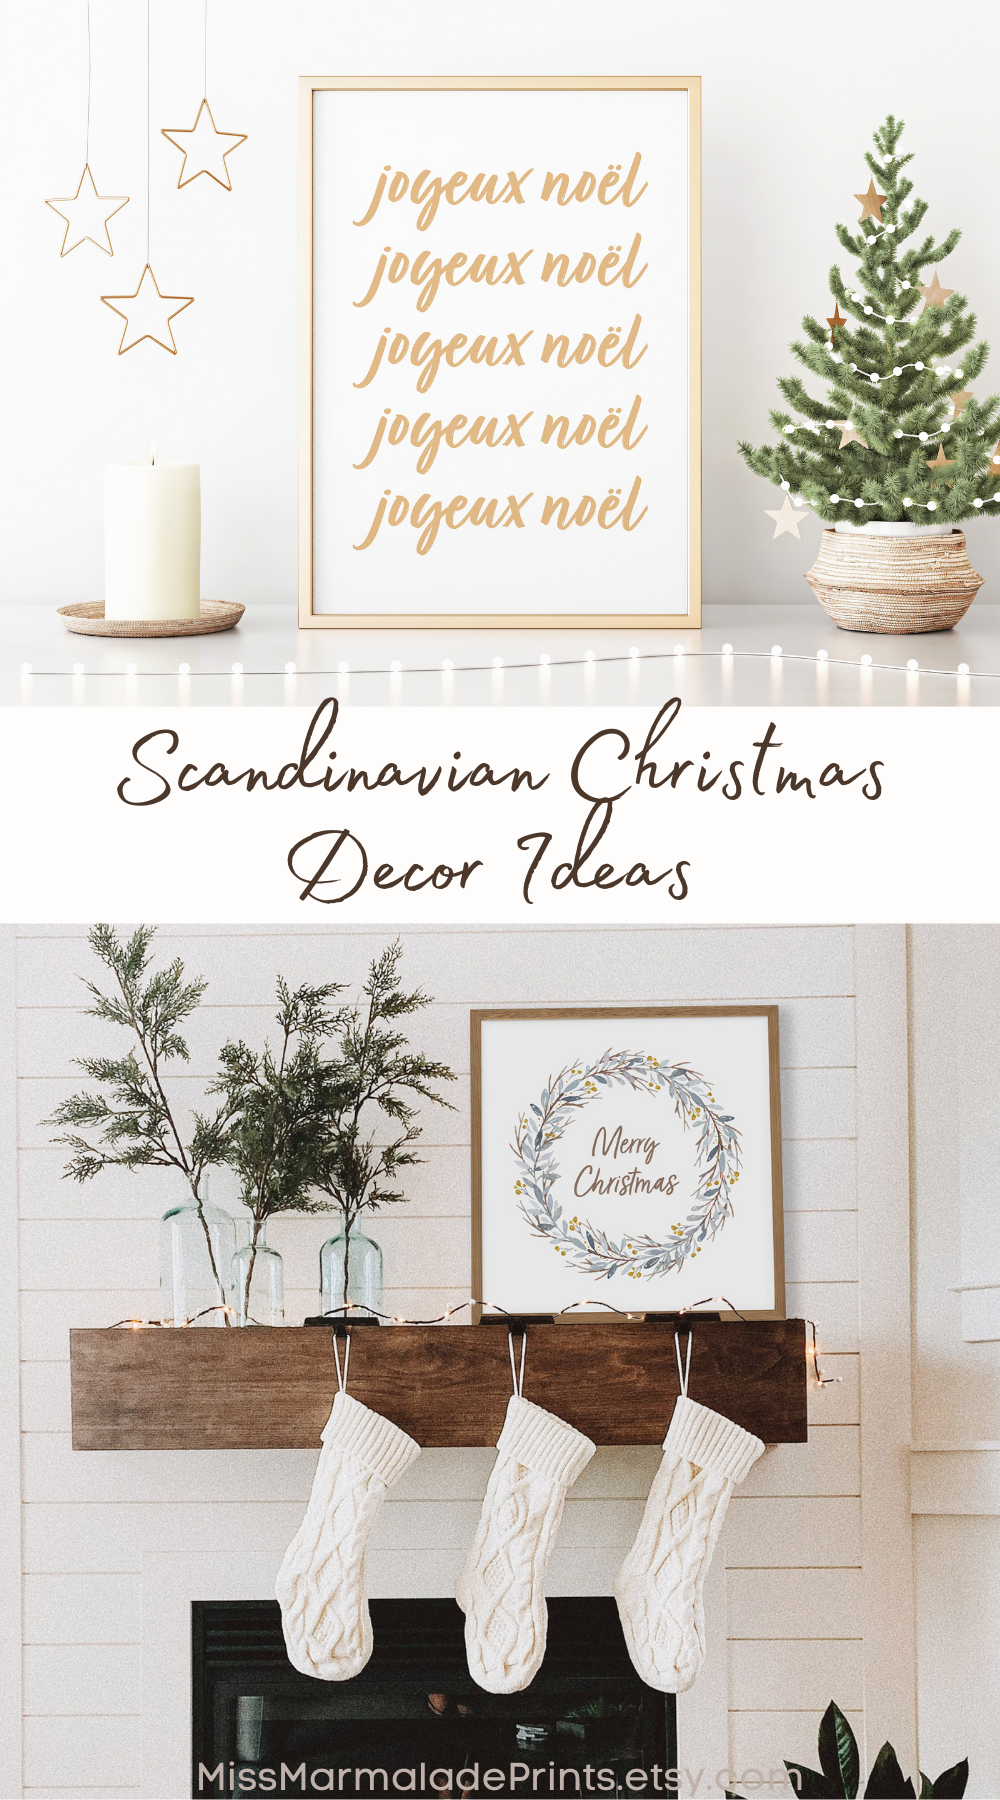 Want To Create Your Own Scandinavian Christmas Look Here Are Some Easy Ideas With Art Prints In 2020 Minimalist Christmas Decor Christmas Art Christmas Prints